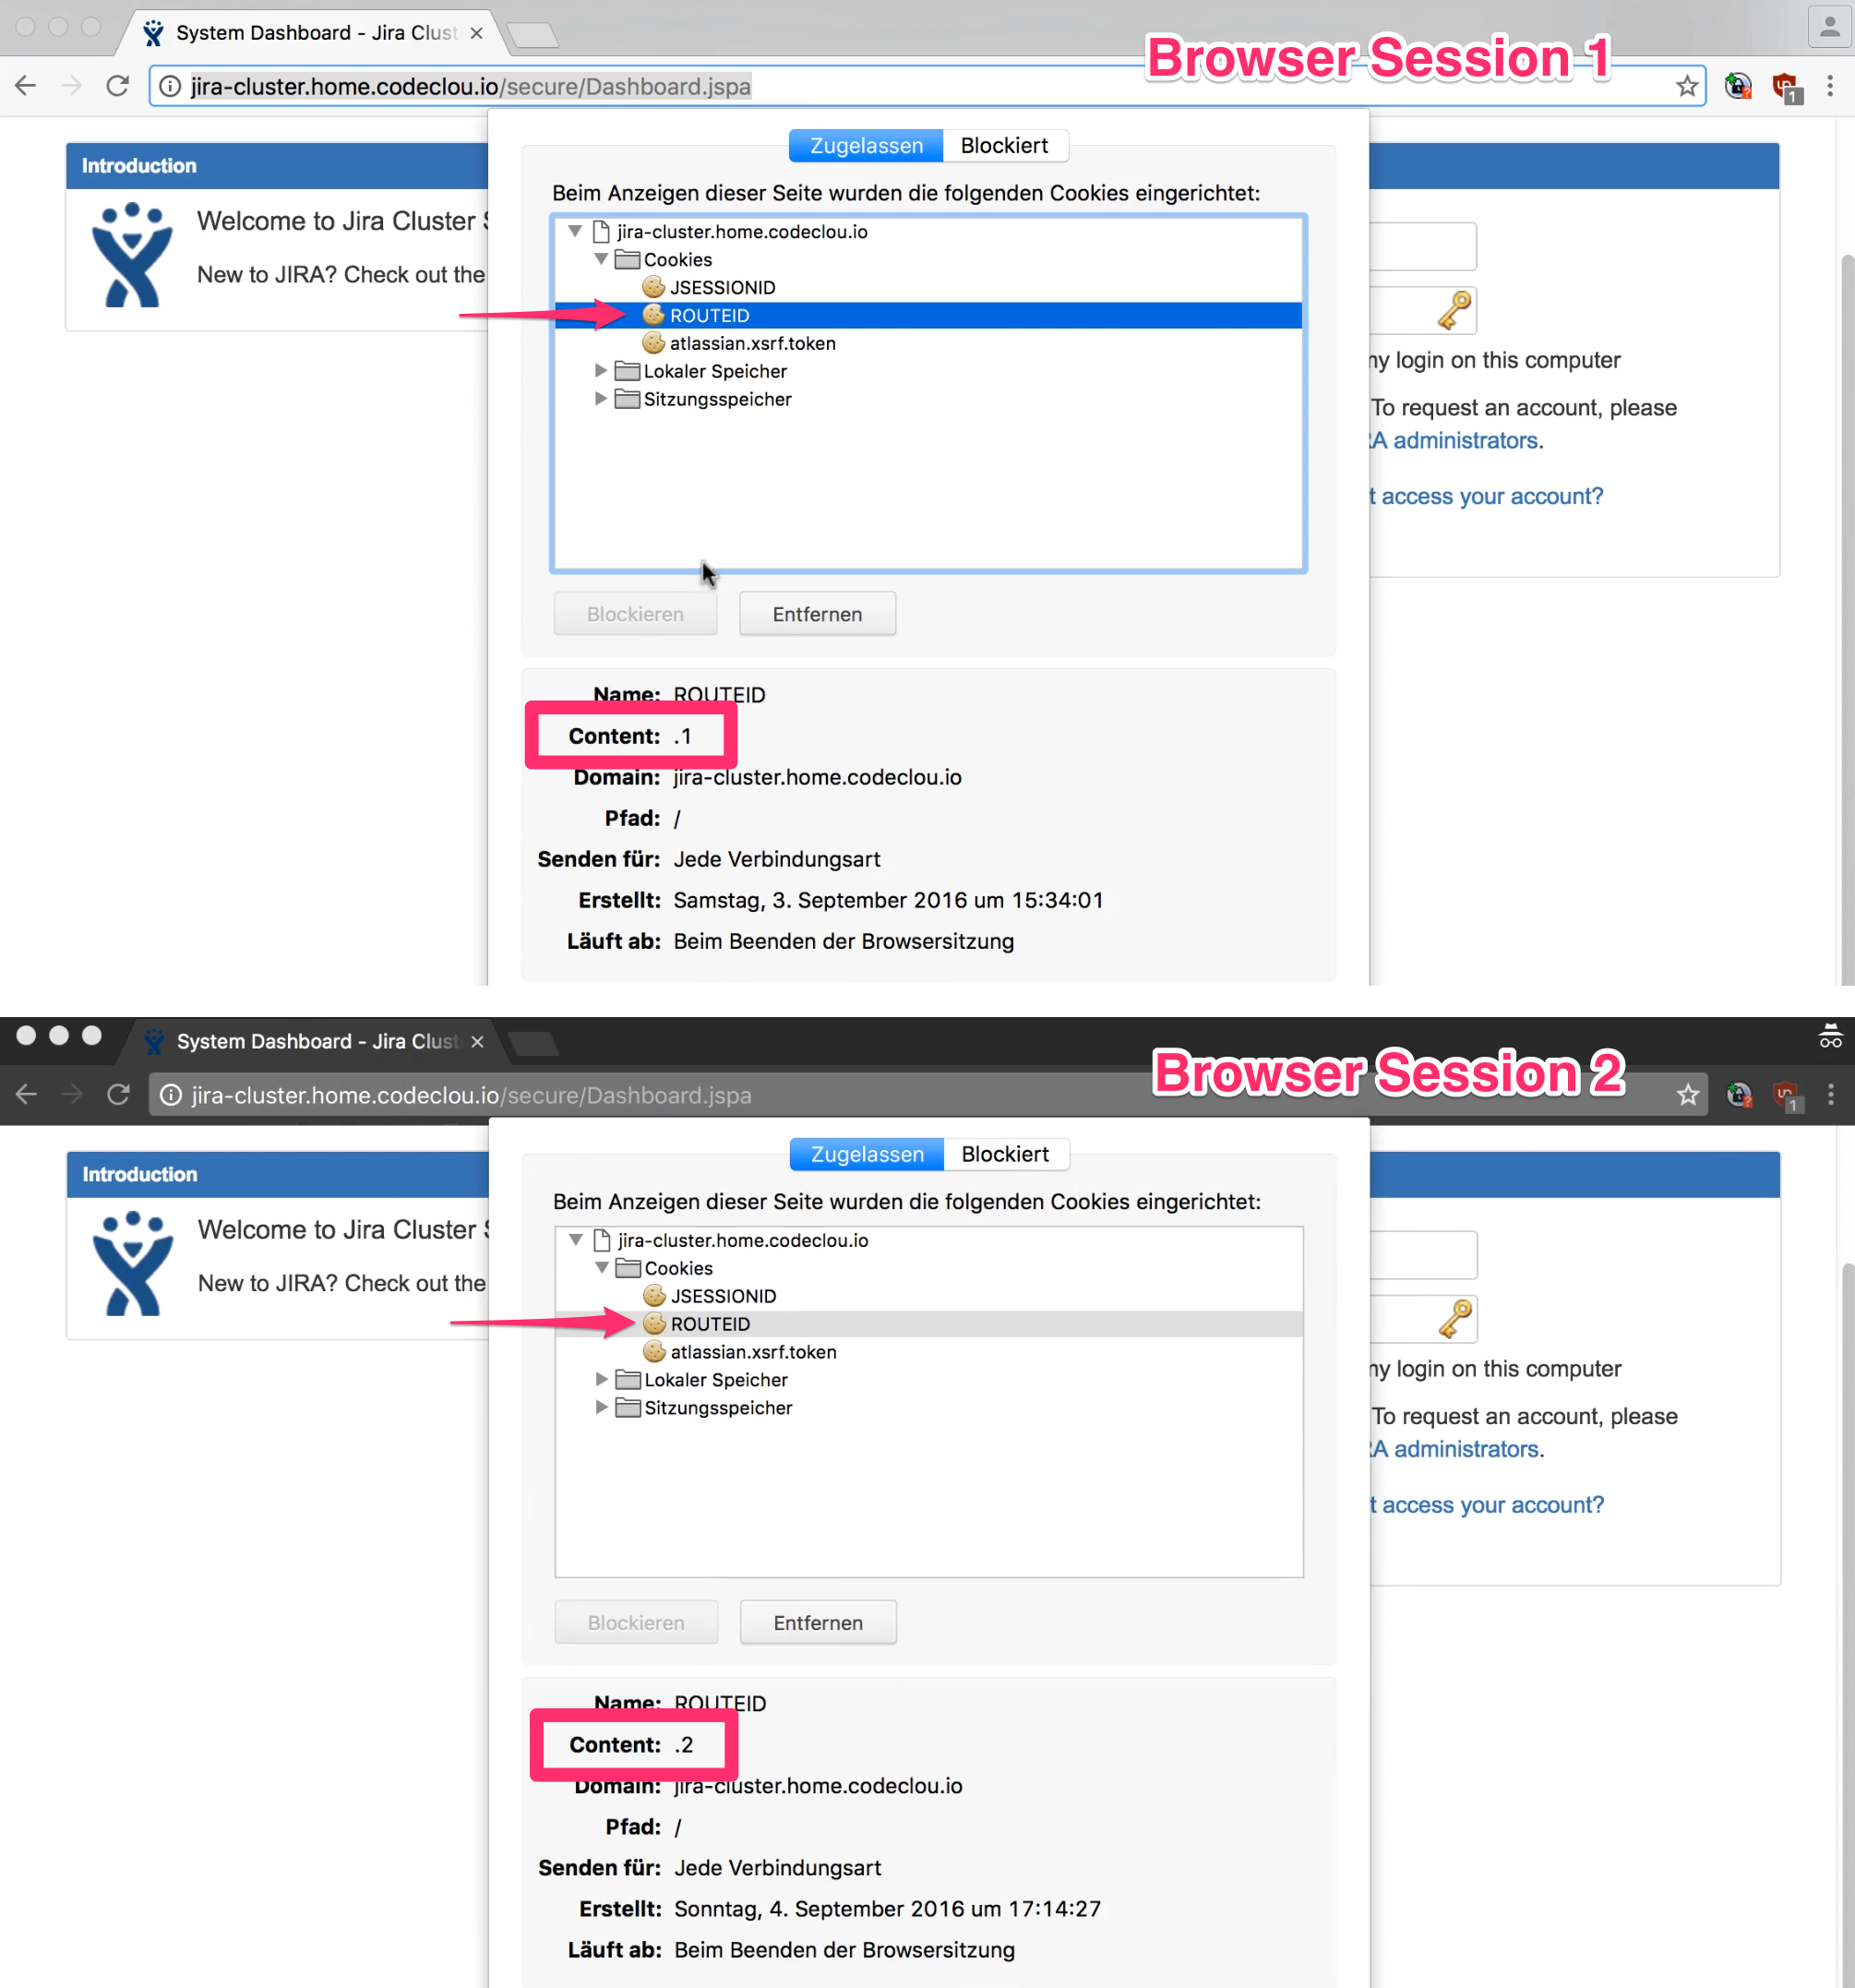 Sticky Session Cookie binding Sessions to JIRA Nodes